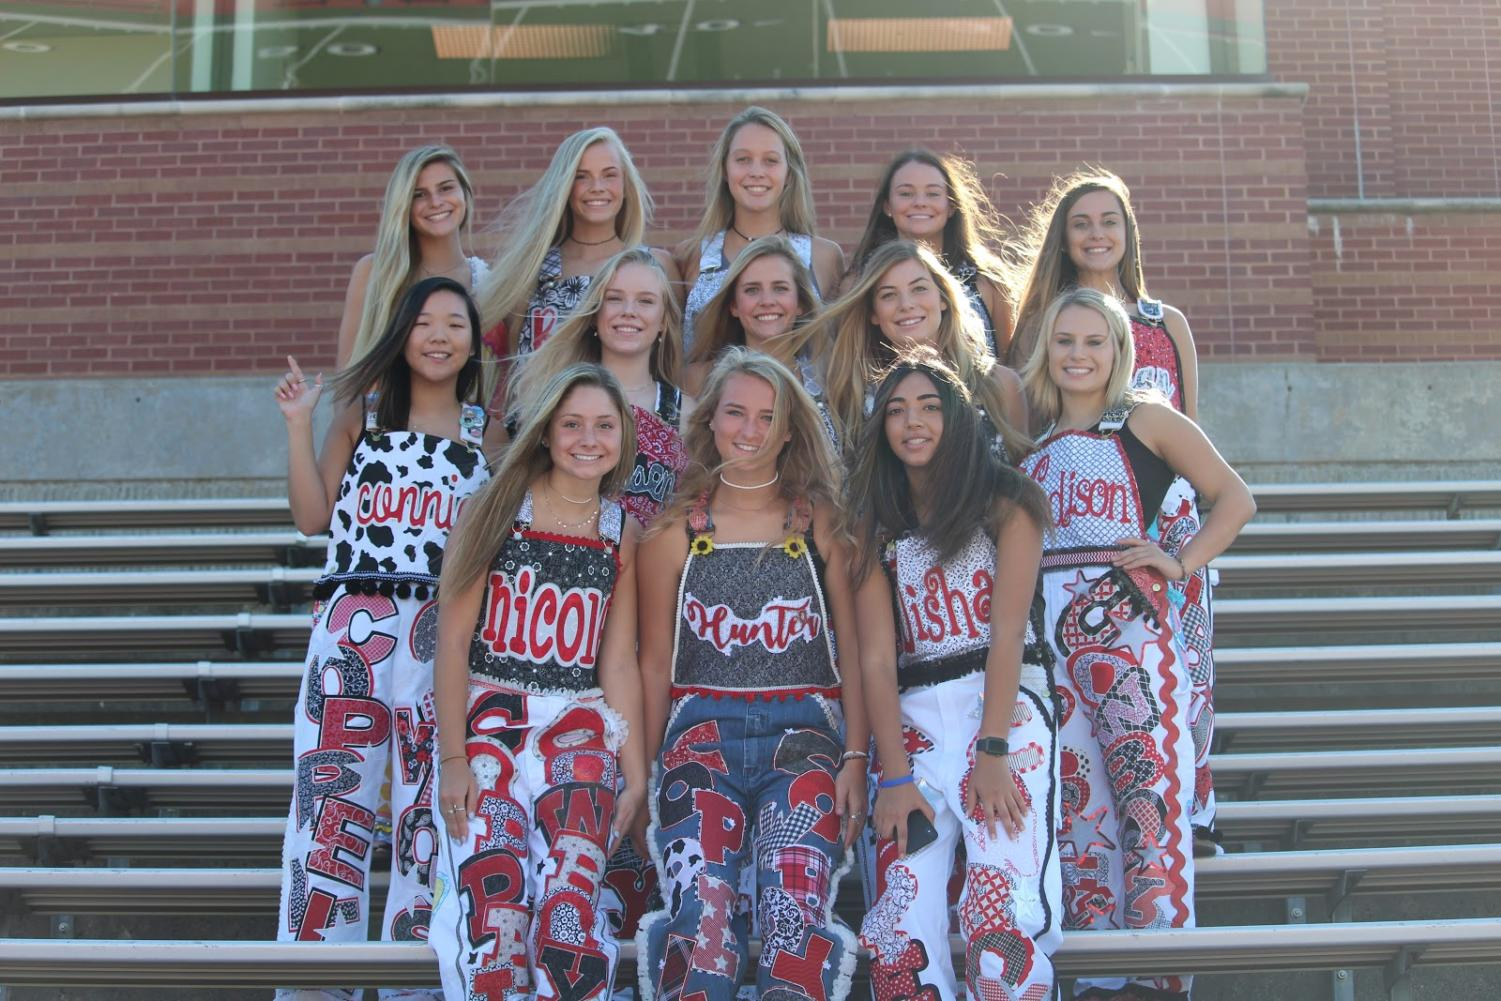 Coppell High School seniors show off their decorated, custom-made overalls at Buddy Echols Field. Seniors spend weeks, even months, choosing between fabrics, trims, patches - fabricating each detail for their overalls.